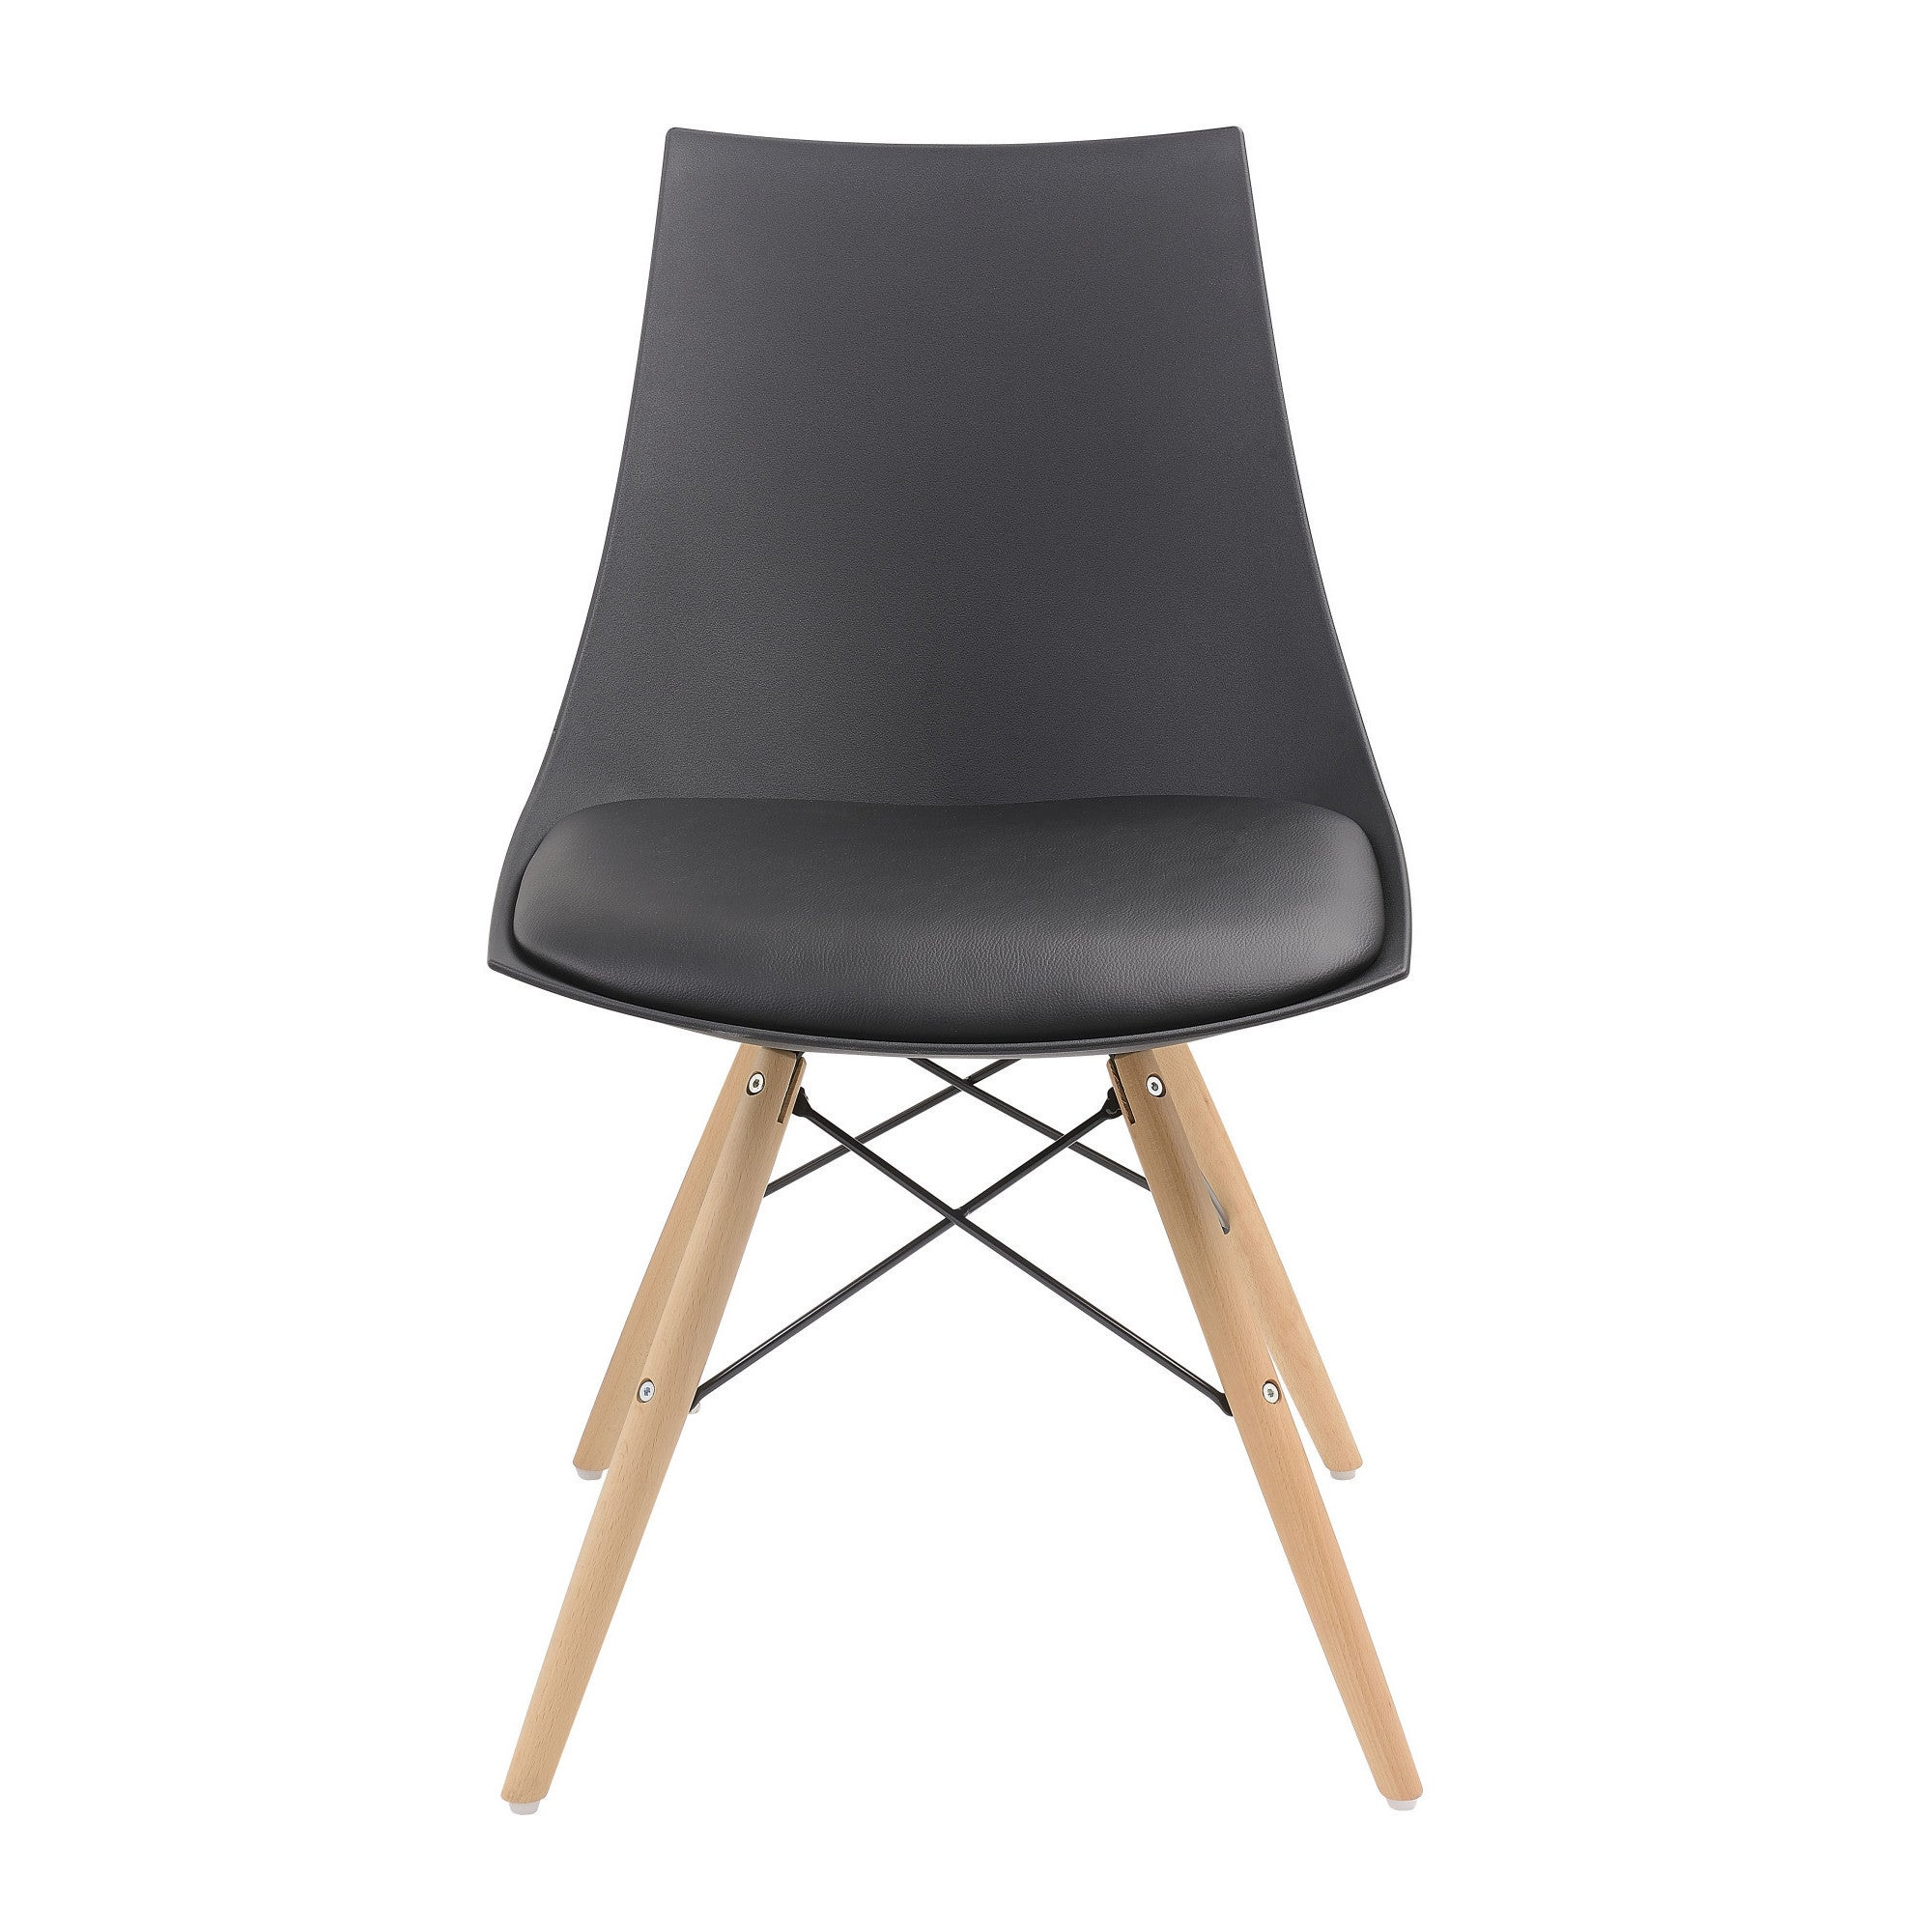 Emerald Home Annette PU Seat and Wood Legs Dining Chair 2...